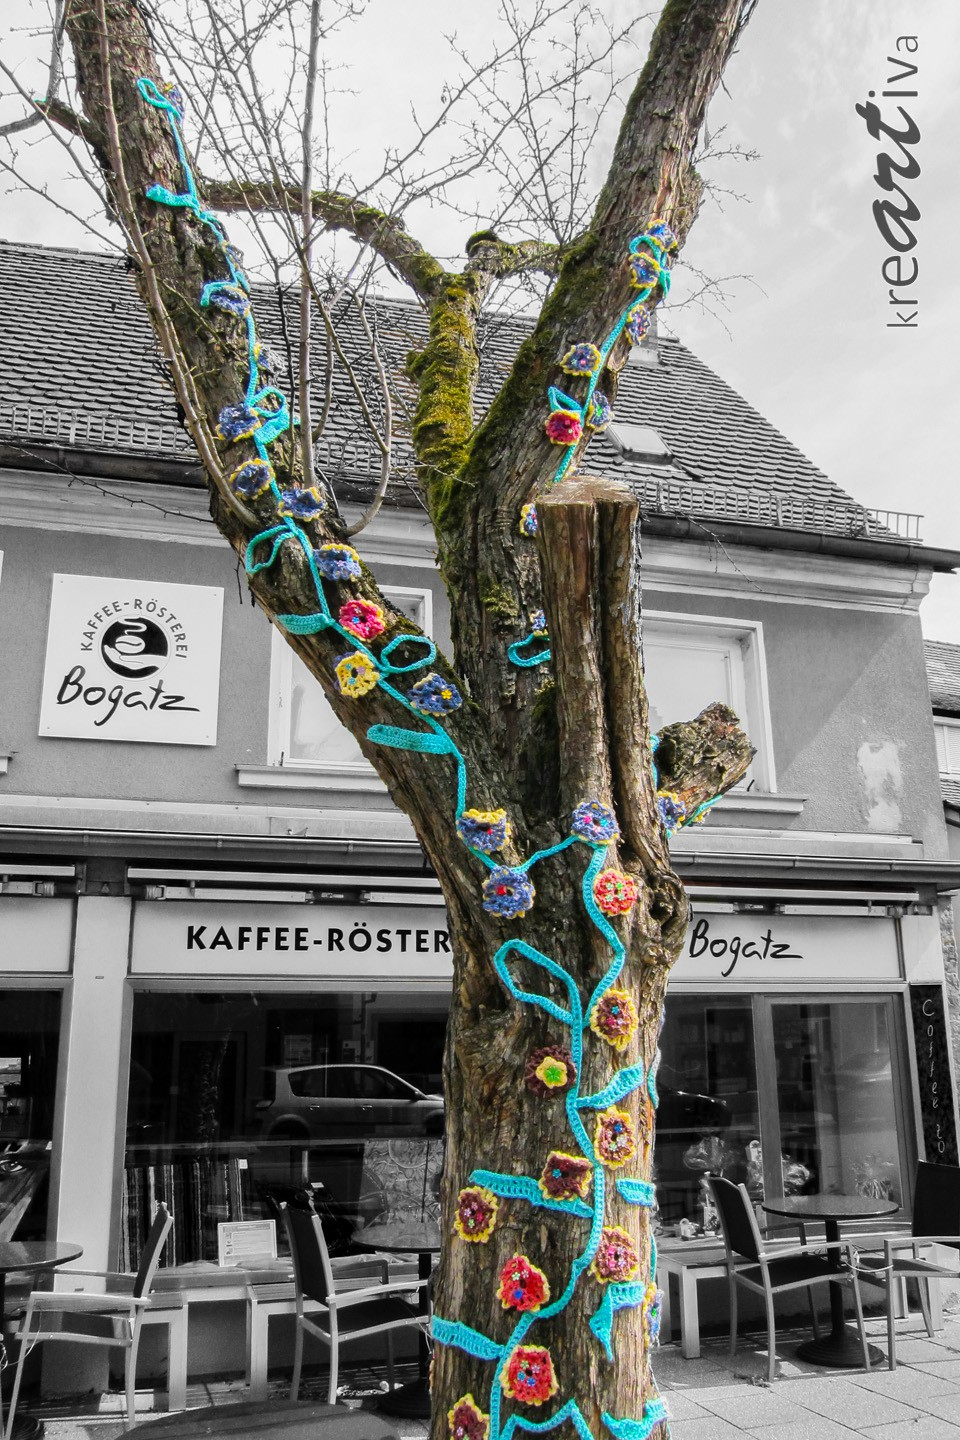 bloom-knitted tree, Forchheim Deutschland 2013.